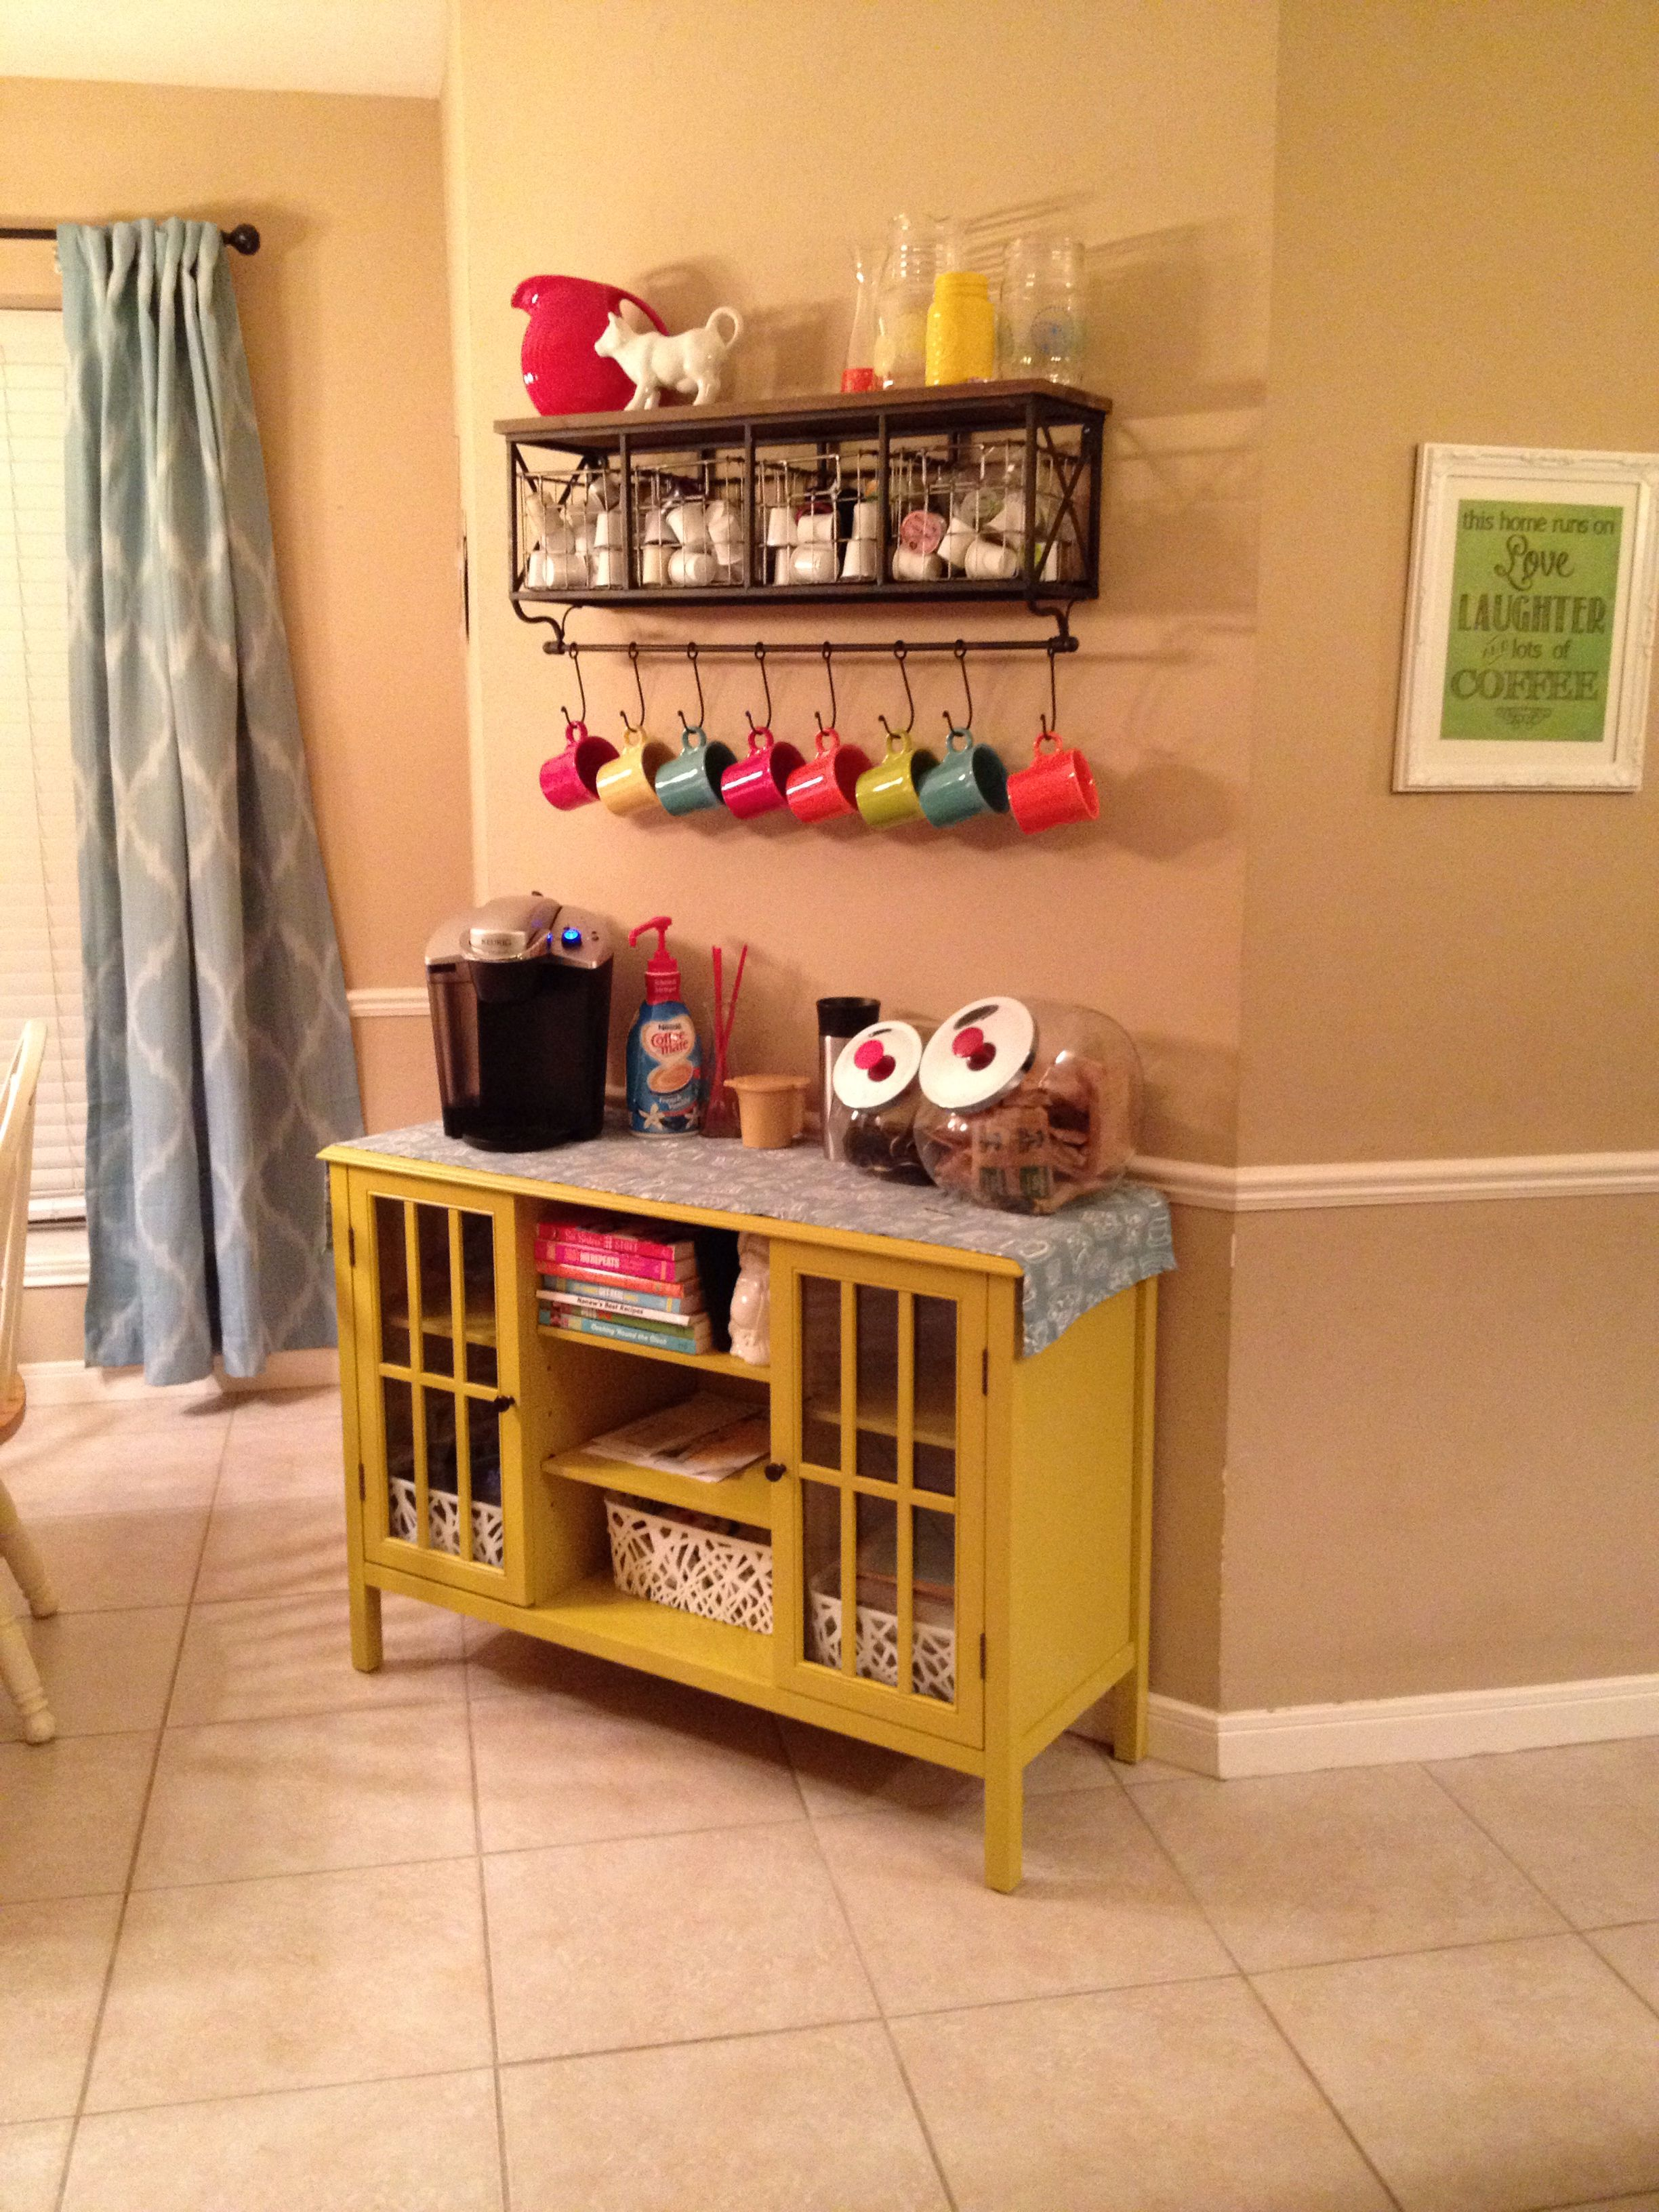 My Coffee bar Breakfast Bar with Keurig and kcups Shelf from